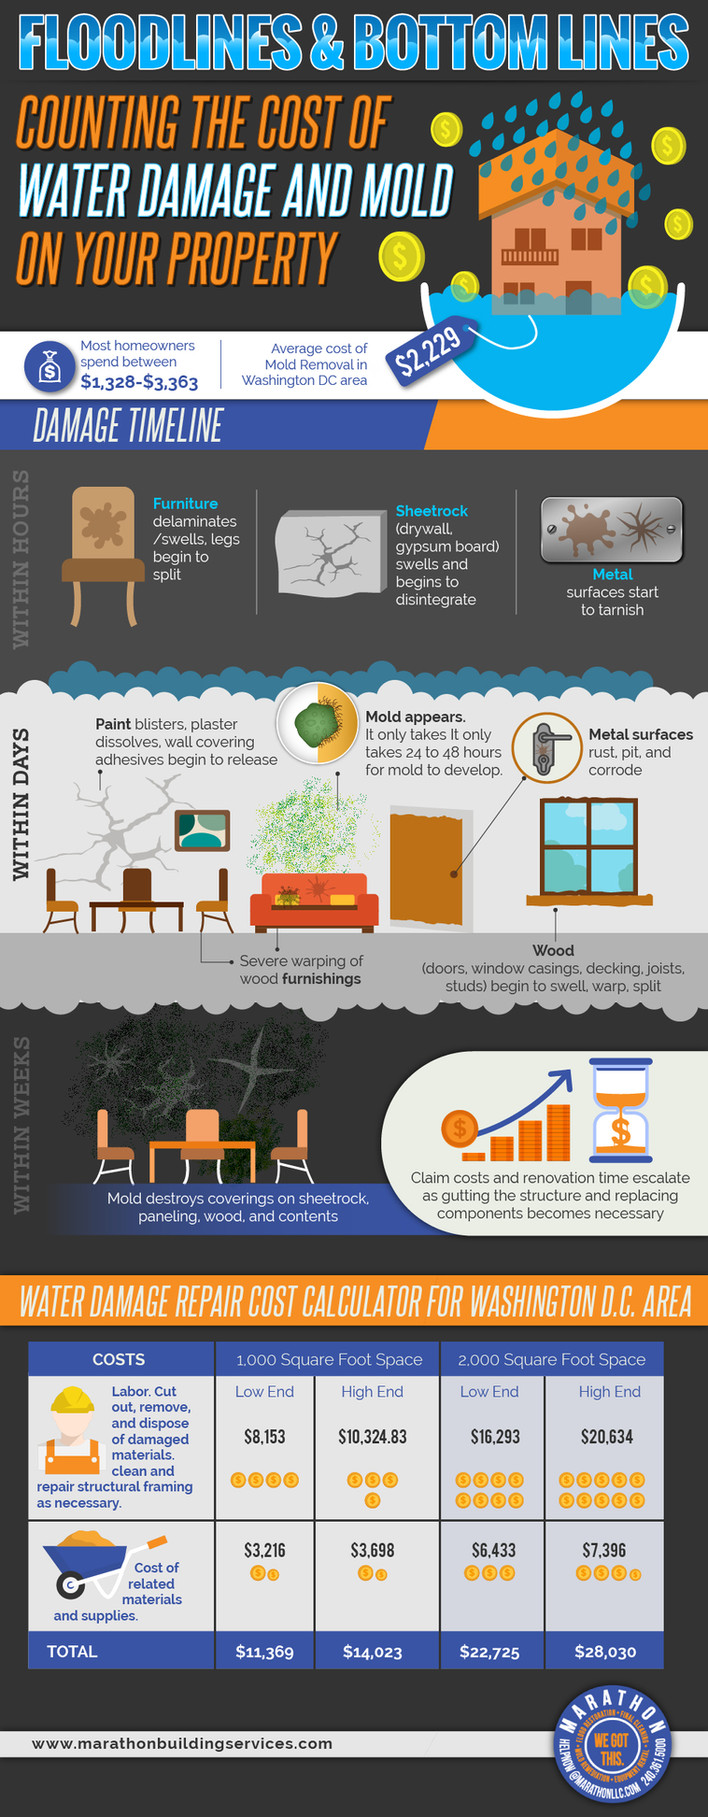 Flood Lines & Bottom Lines Counting the Cost of Water Damage and Mold On Your Property